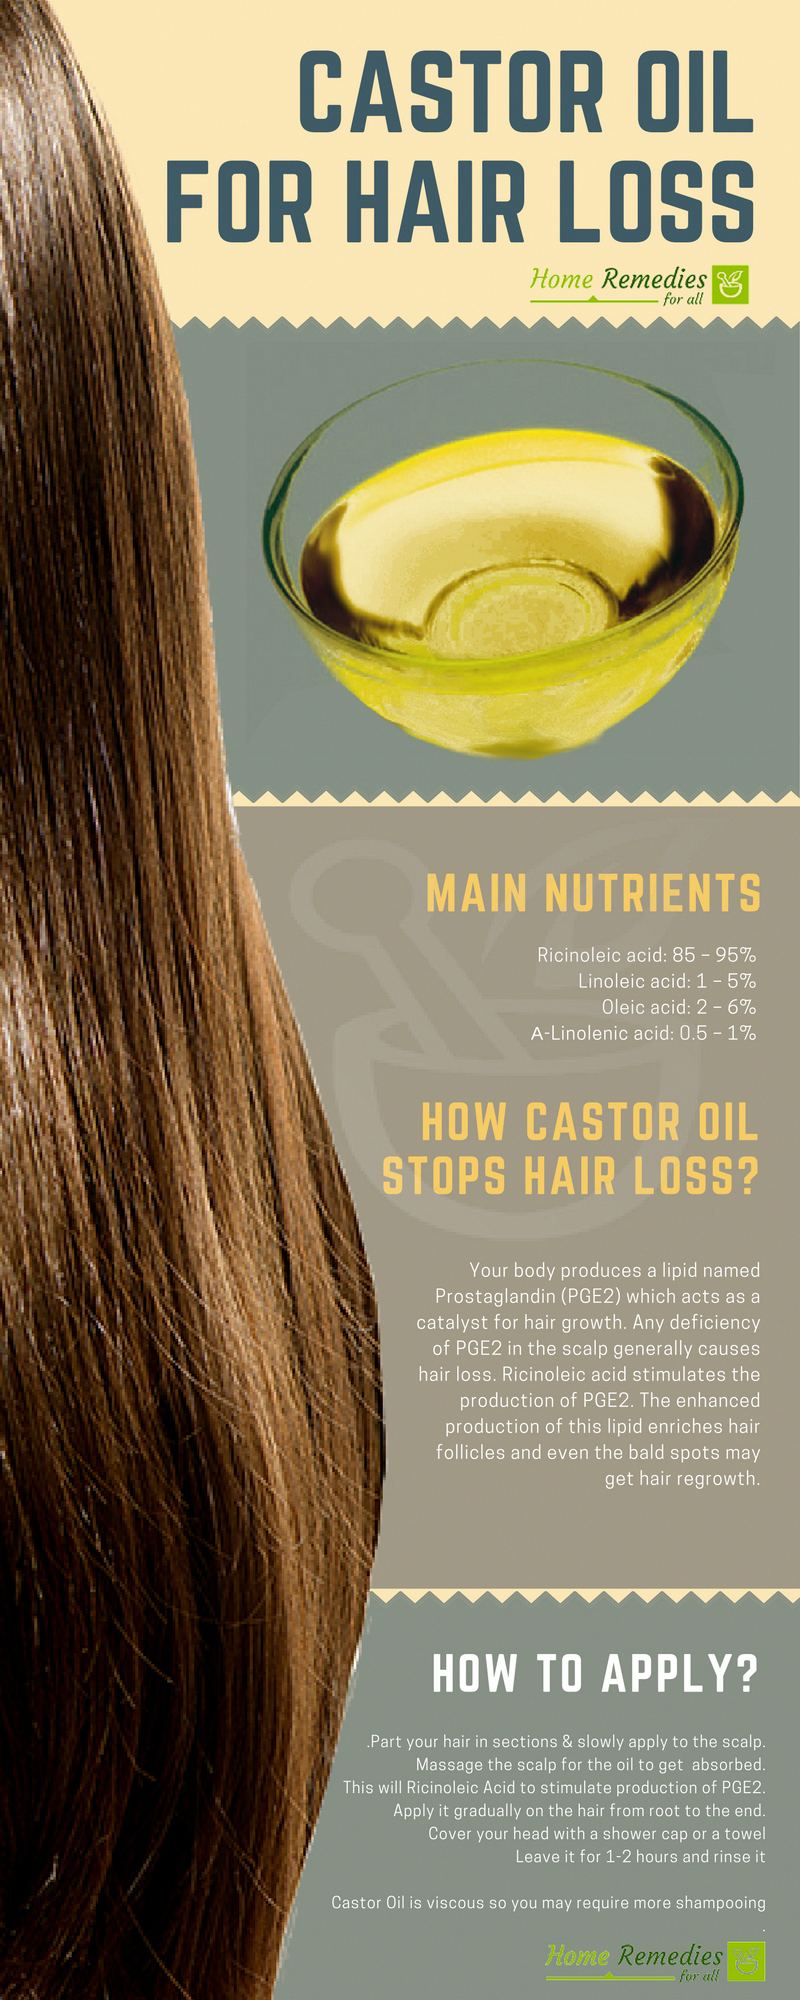 why lose hair whylosehair Home remedies for hair